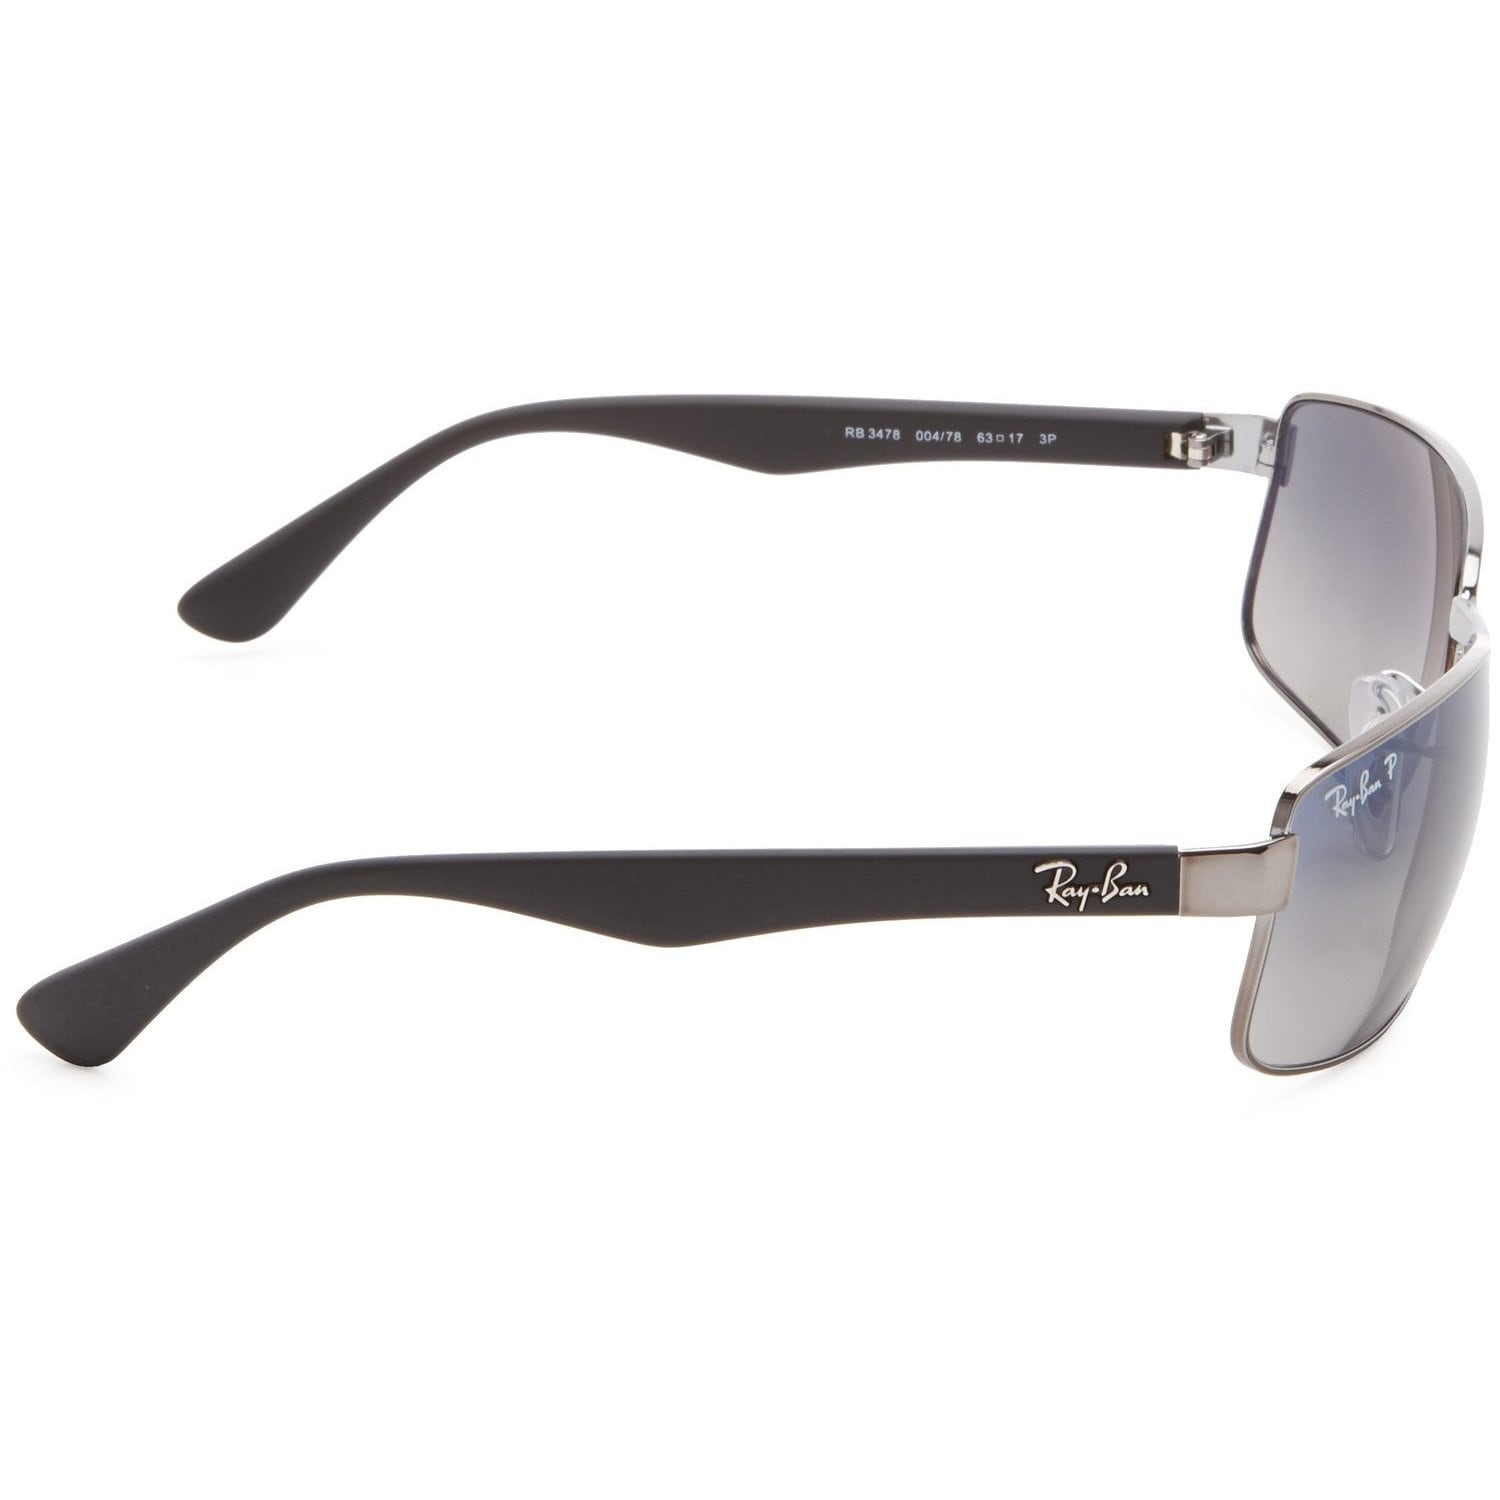 5f9a95cf4f Shop Ray-Ban RB3478 004 78 Gunmetal Black Frame Polarized Blue Grey Gradient  63mm Lens Sunglasses - Free Shipping Today - Overstock - 14442251